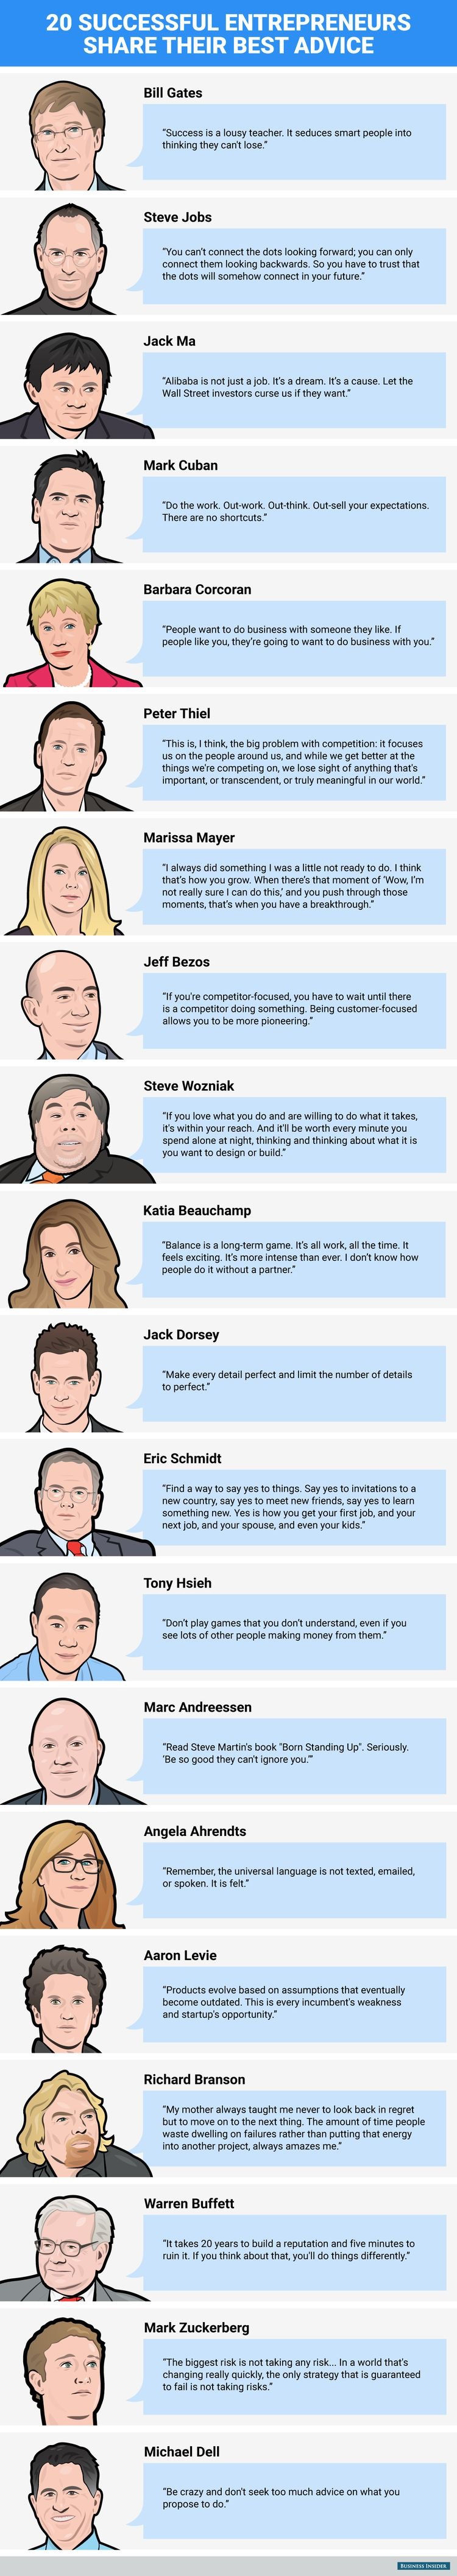 20 successful Entrepreneurs share their best advice [image]